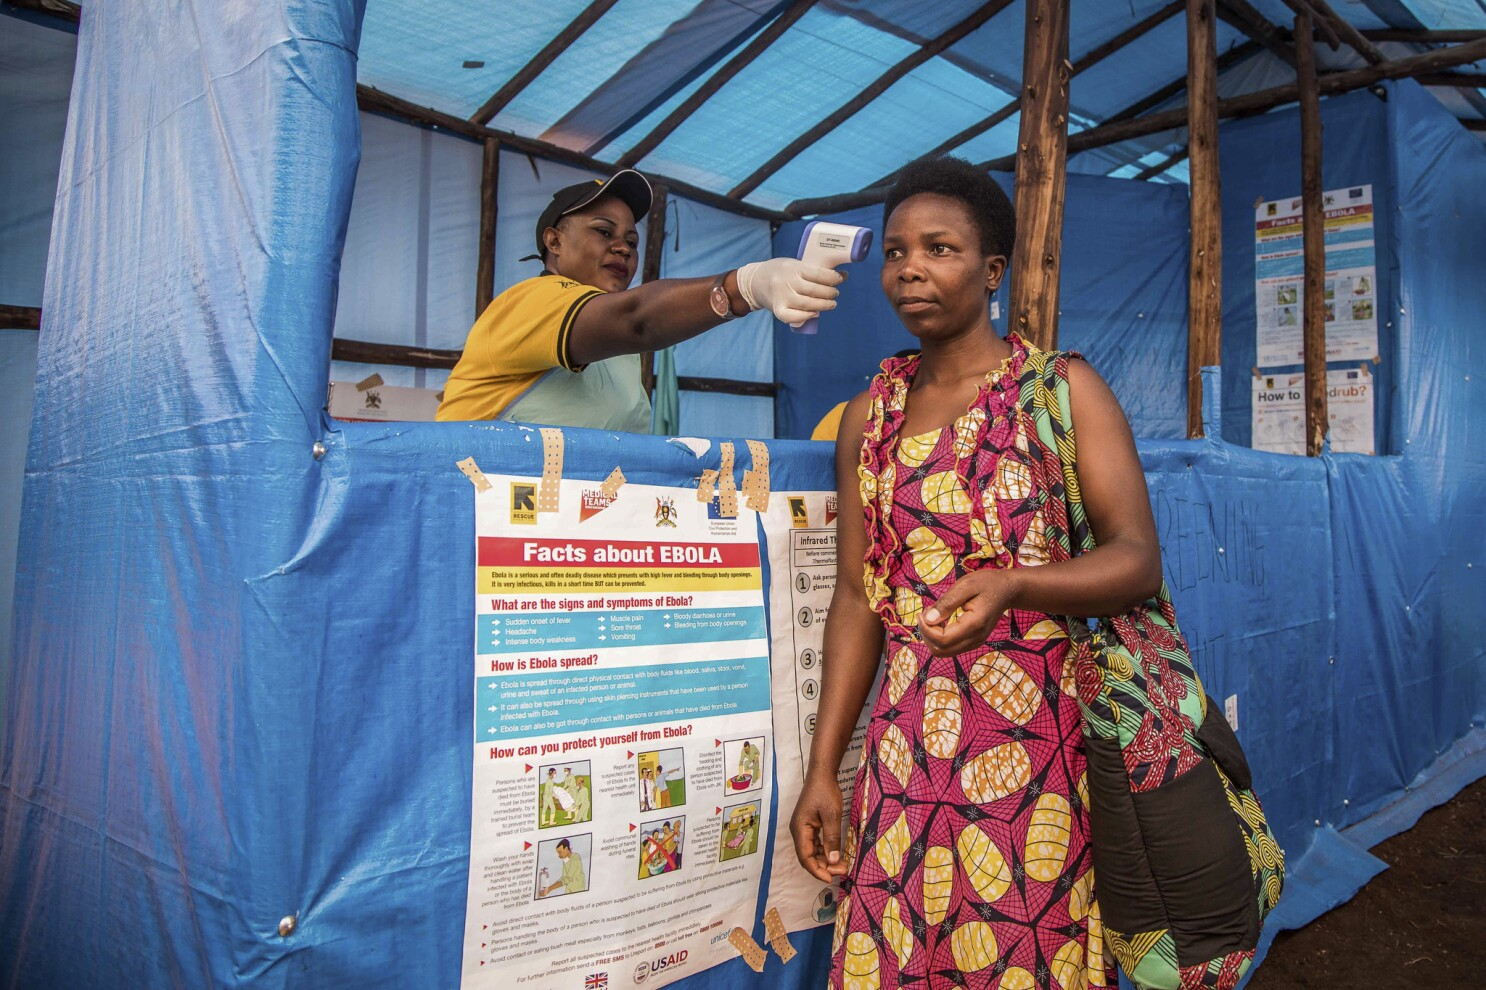 UN says Ebola outbreak in Congo still not a global emergency - The